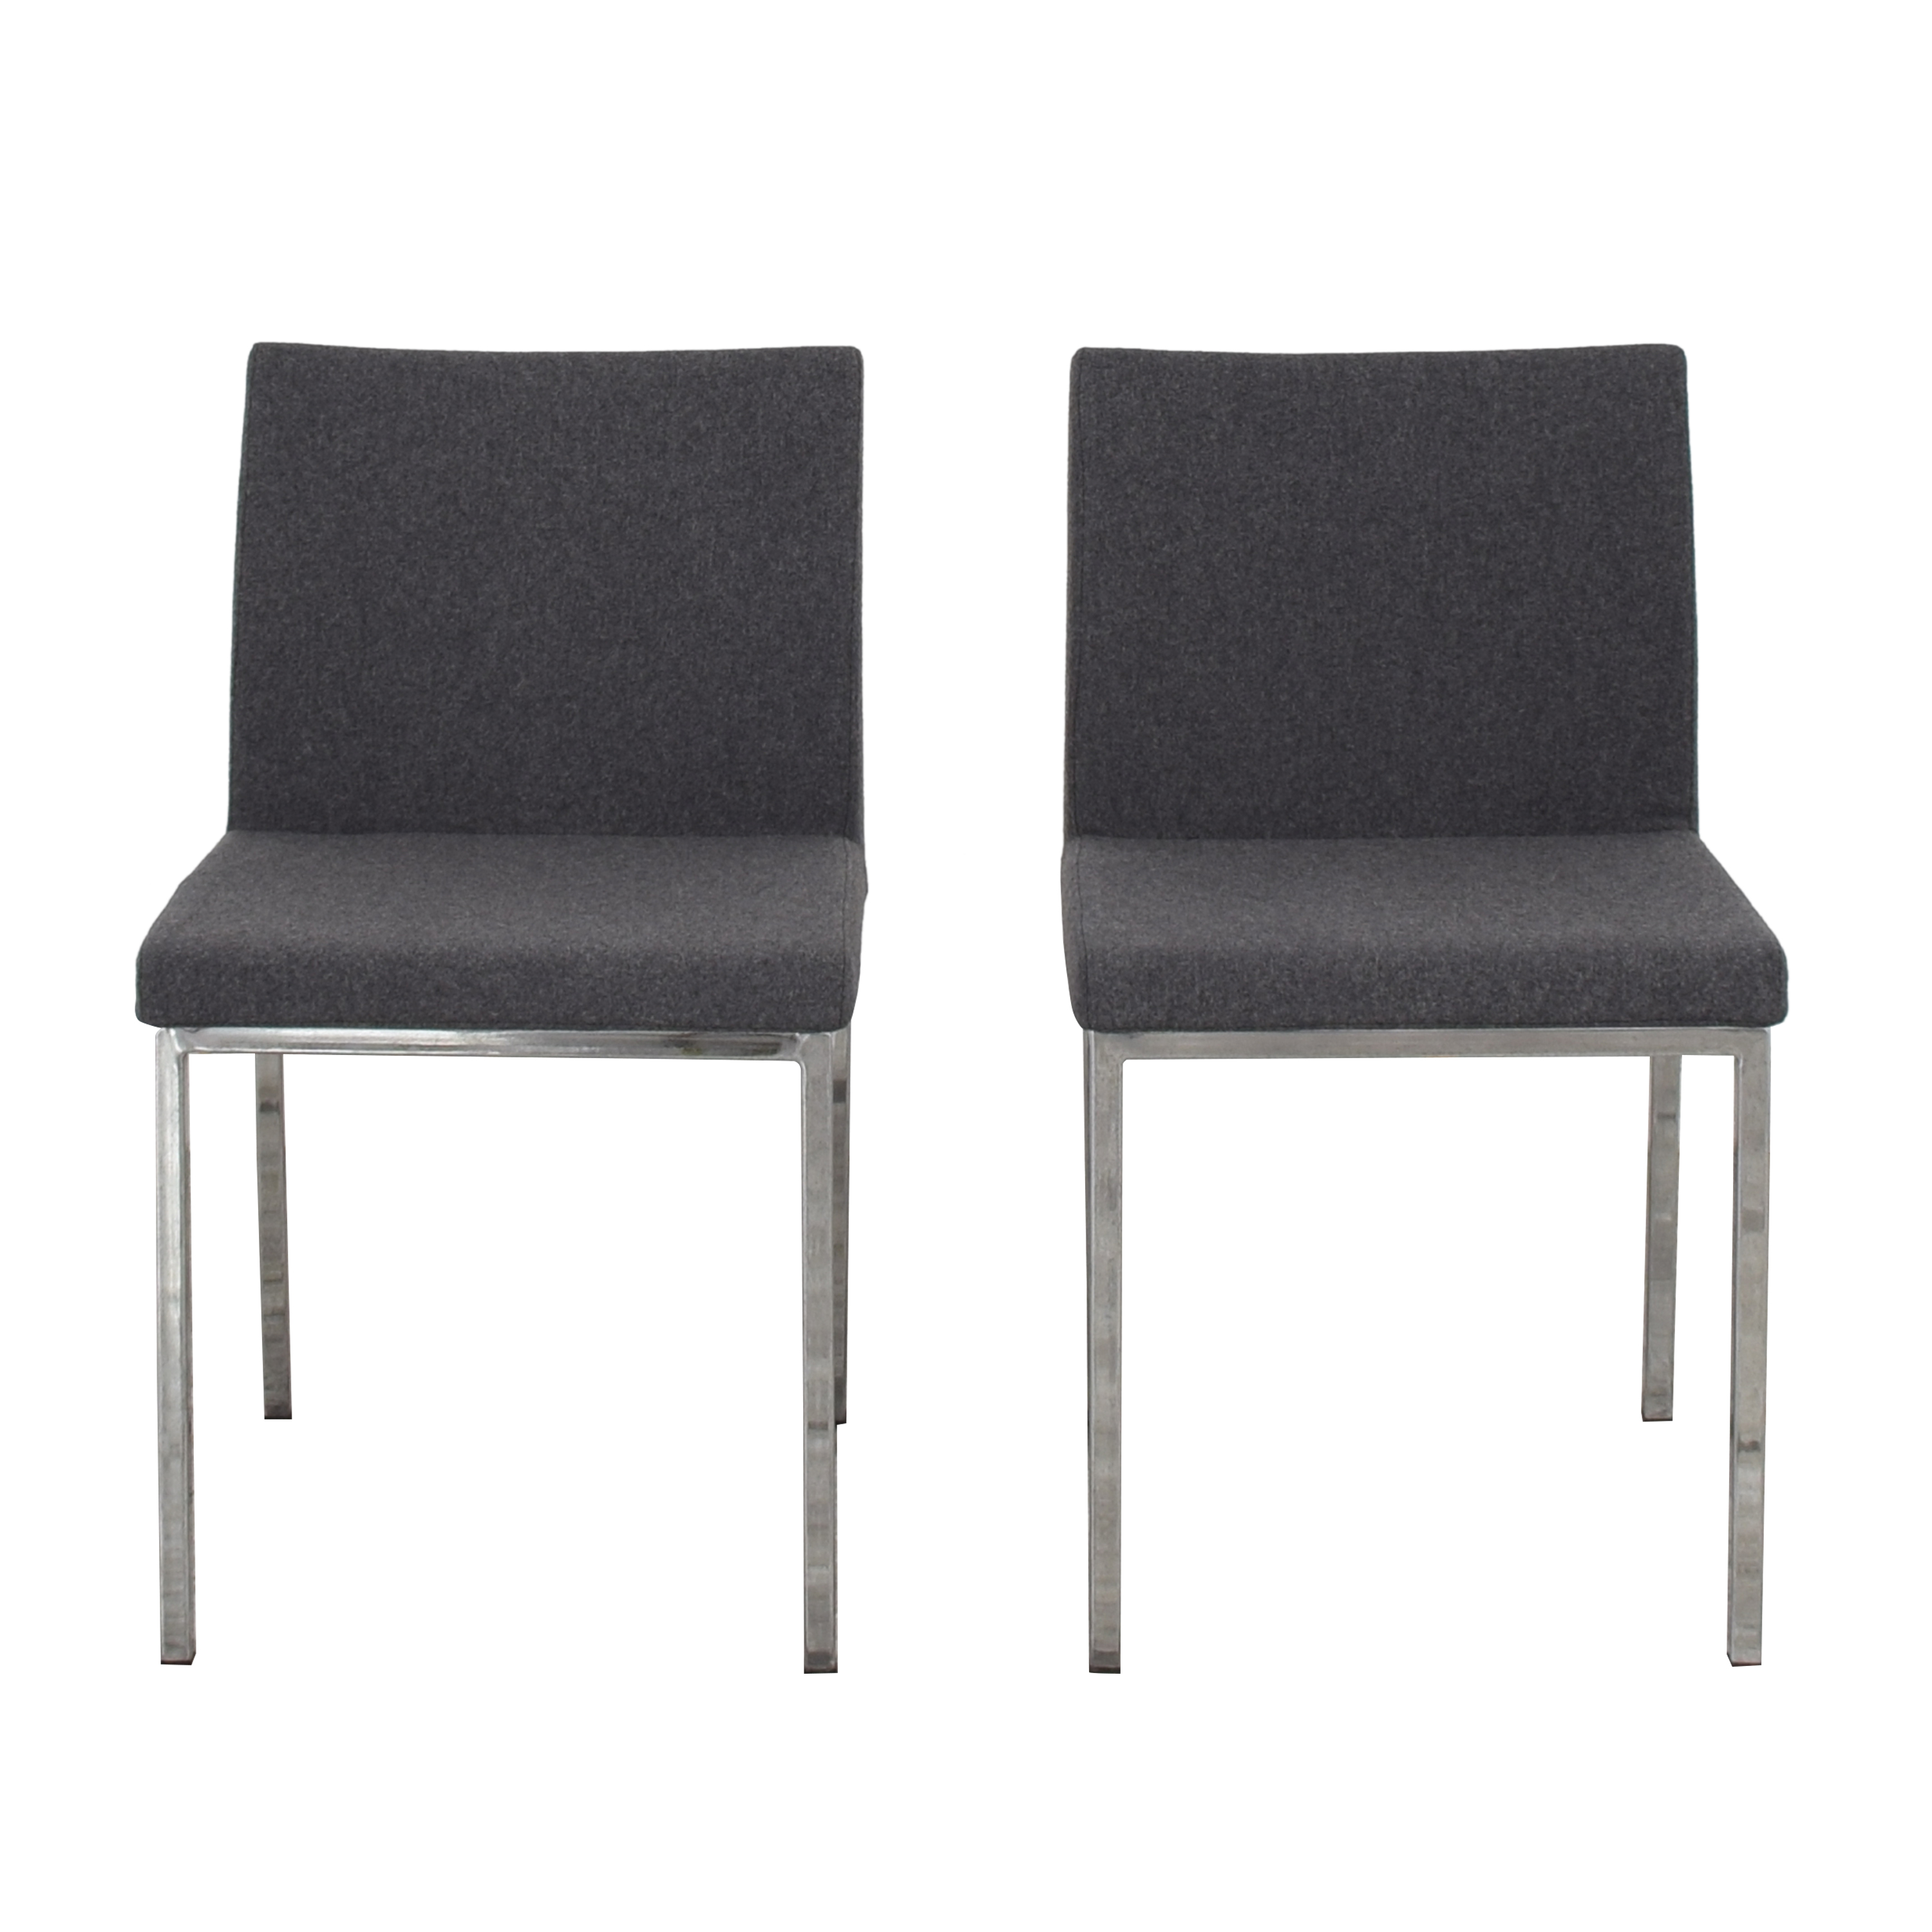 Crate & Barrel Crate & Barrel Upholstered Dining Chairs nj